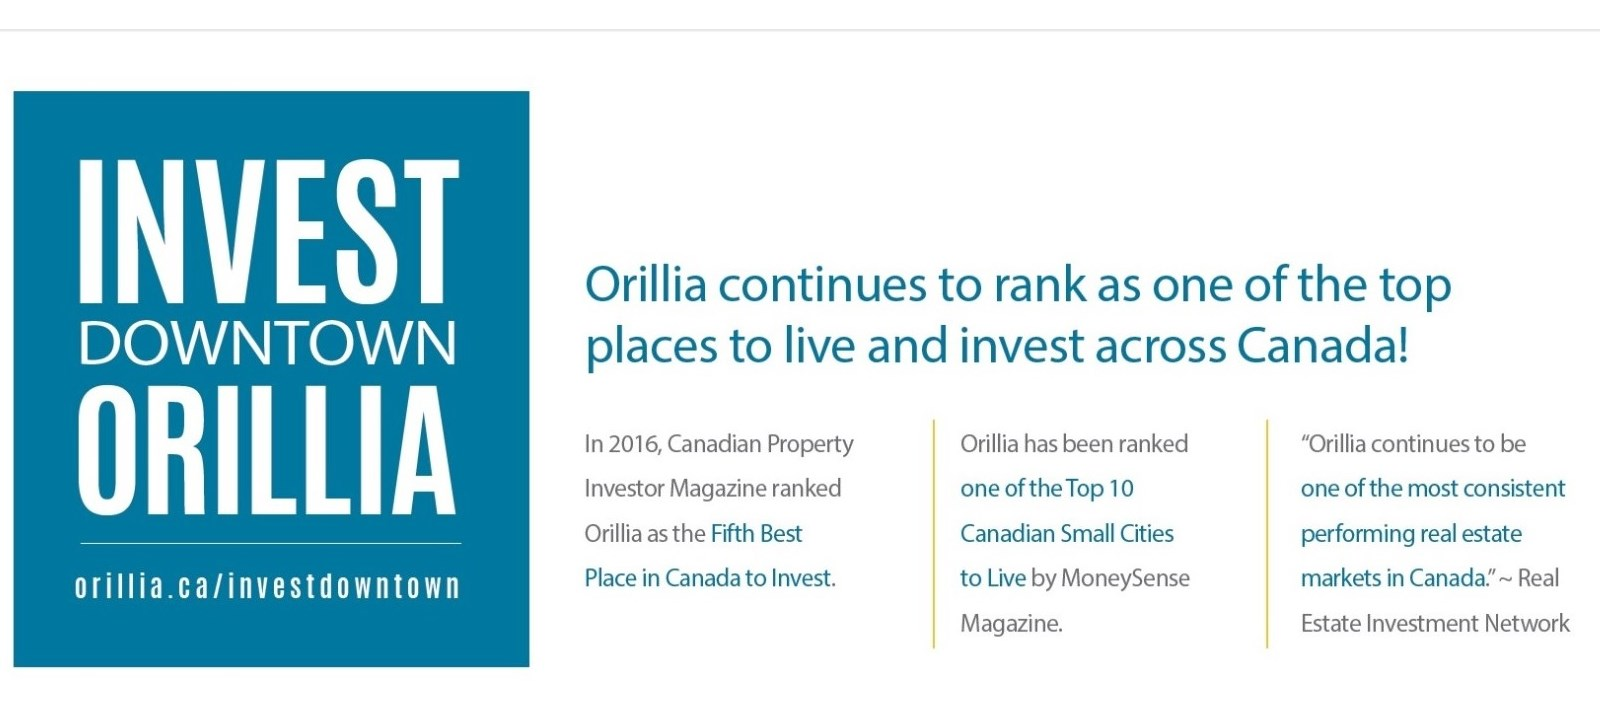 Invest Downtown Orillia